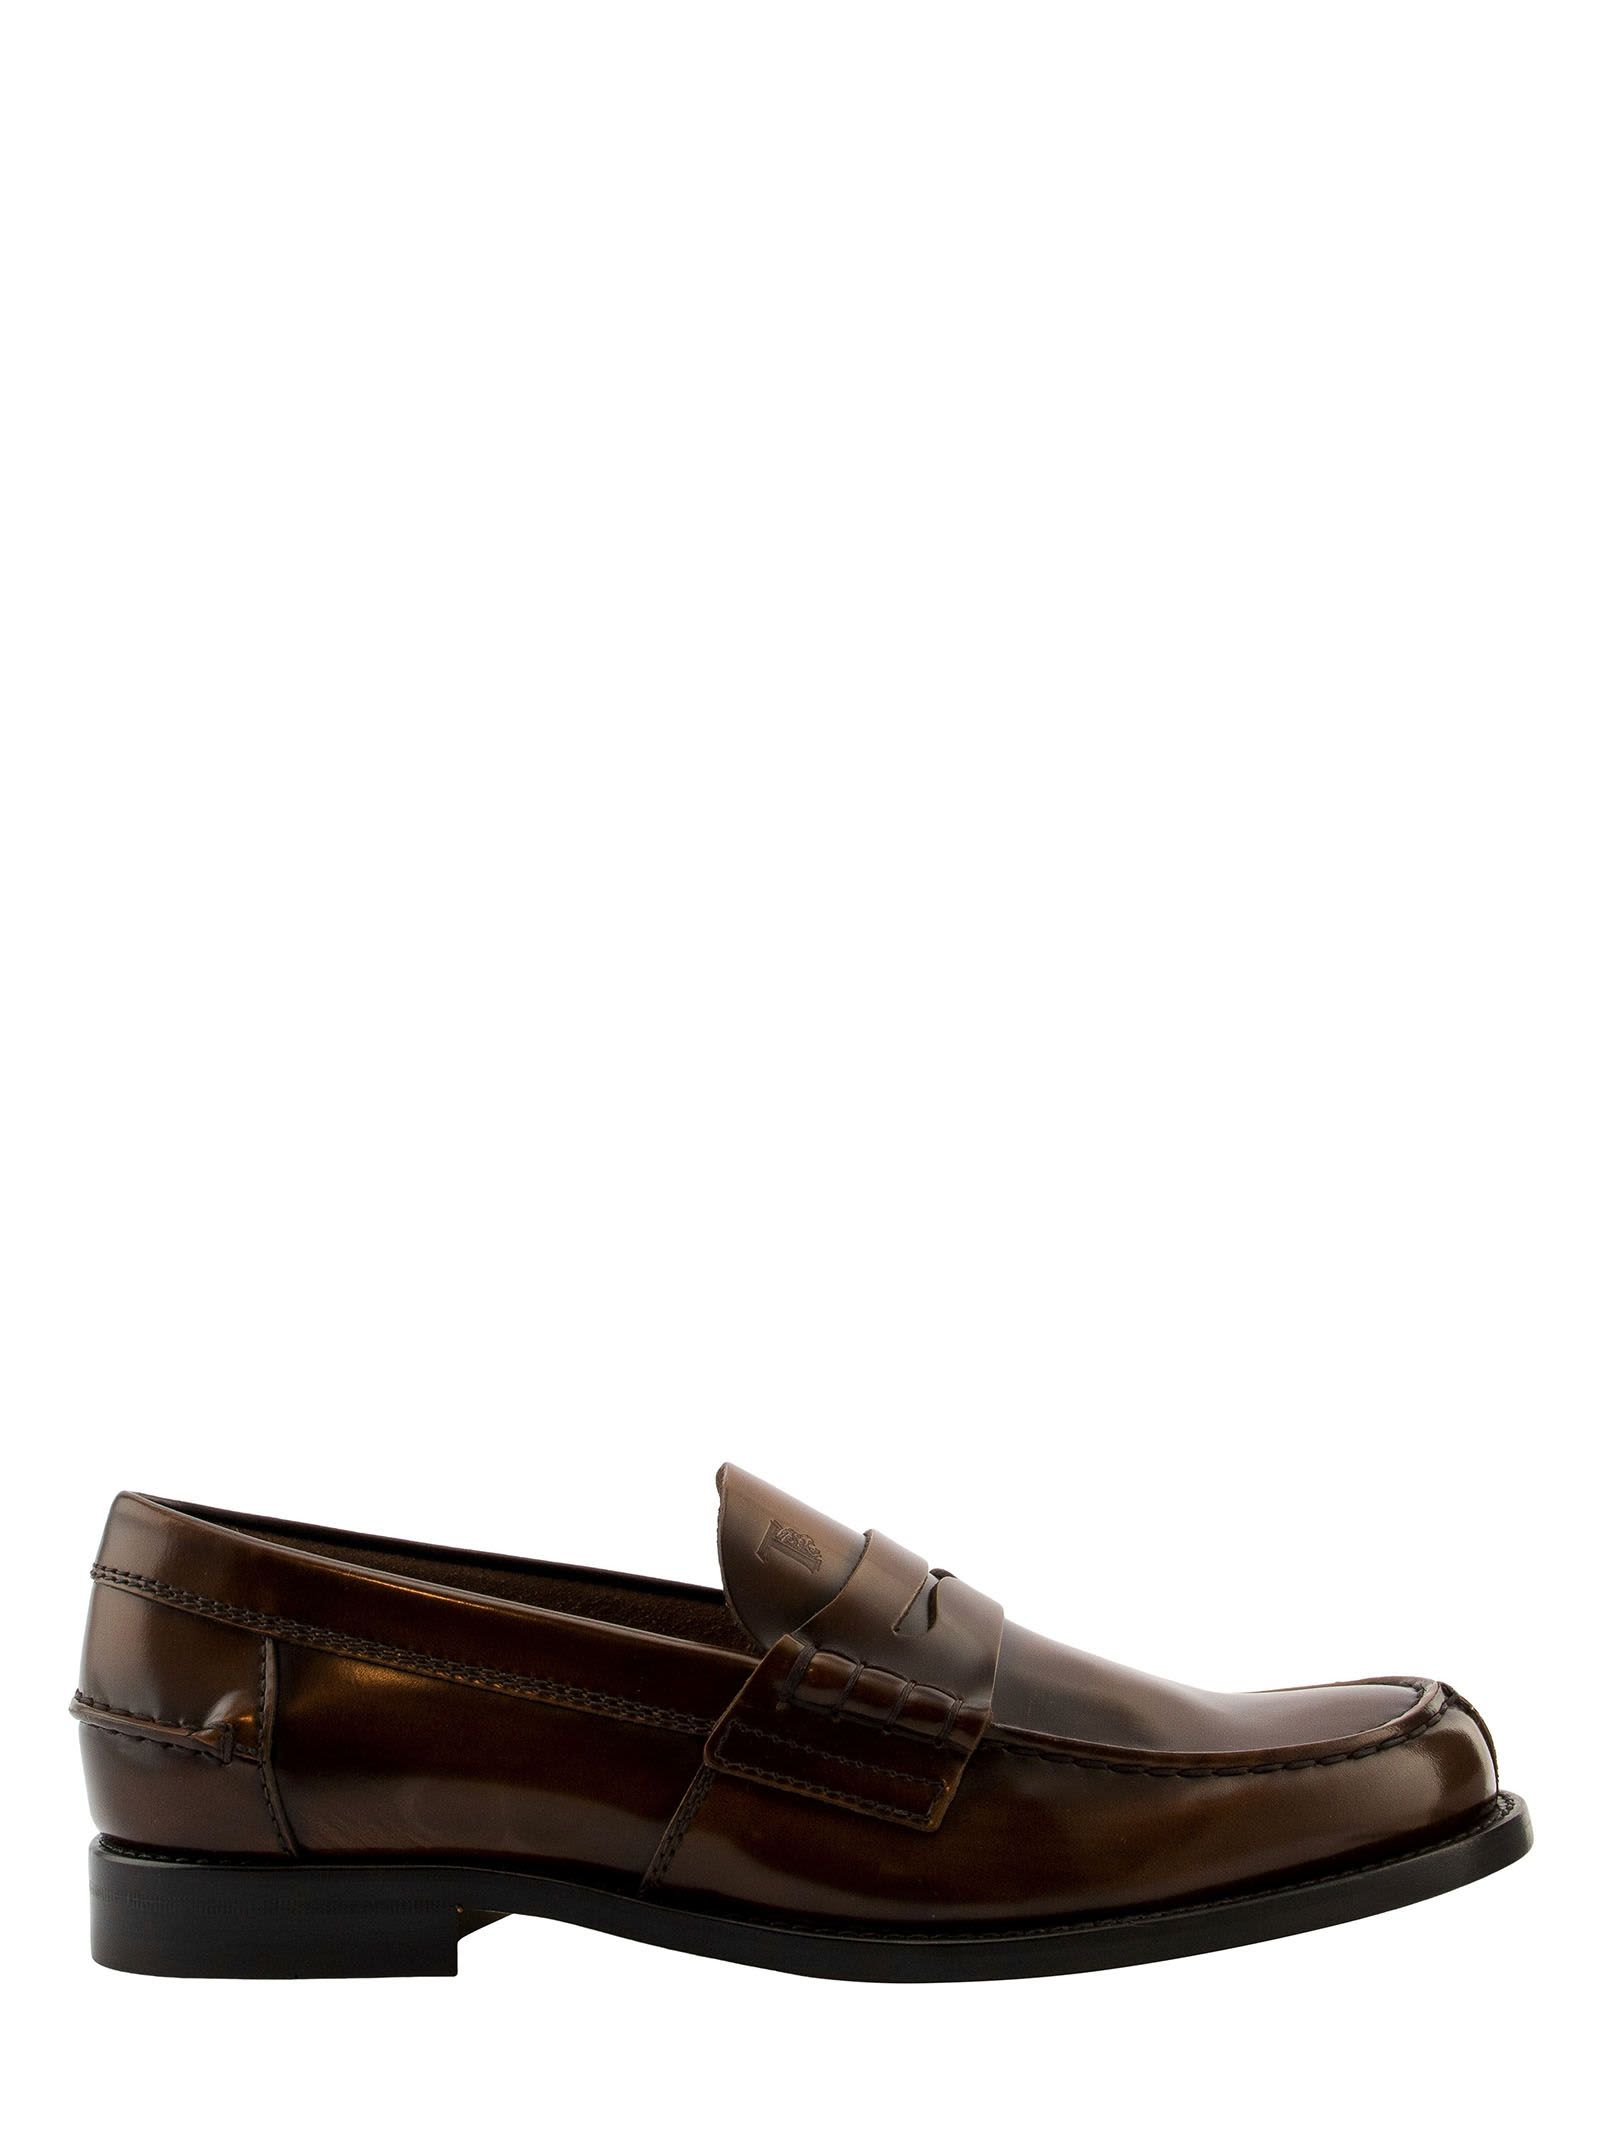 Tods Loafers In Leather